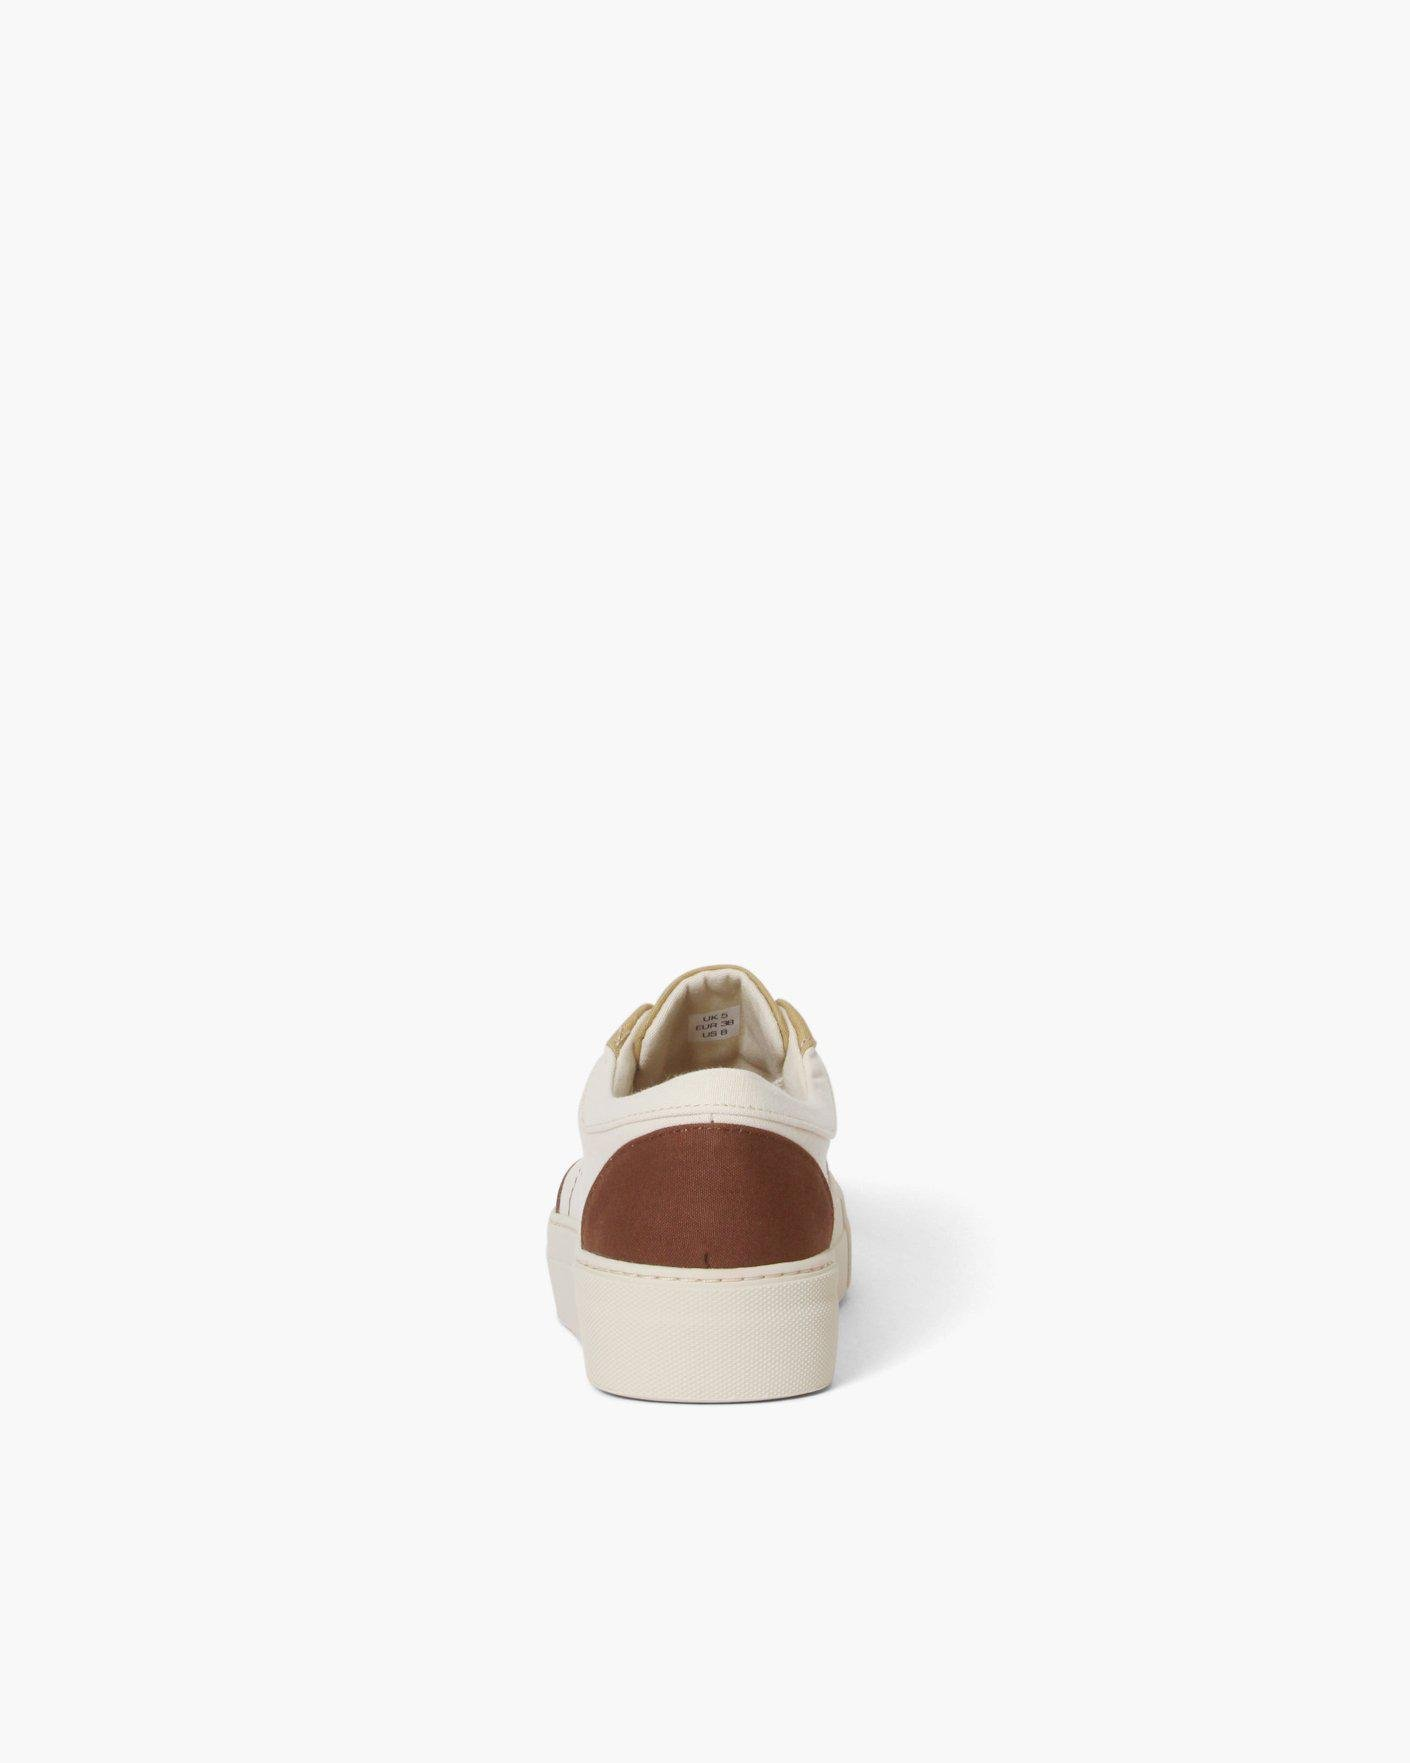 Bailey Sneakers Cotton Canvas Coffee - SALE 2